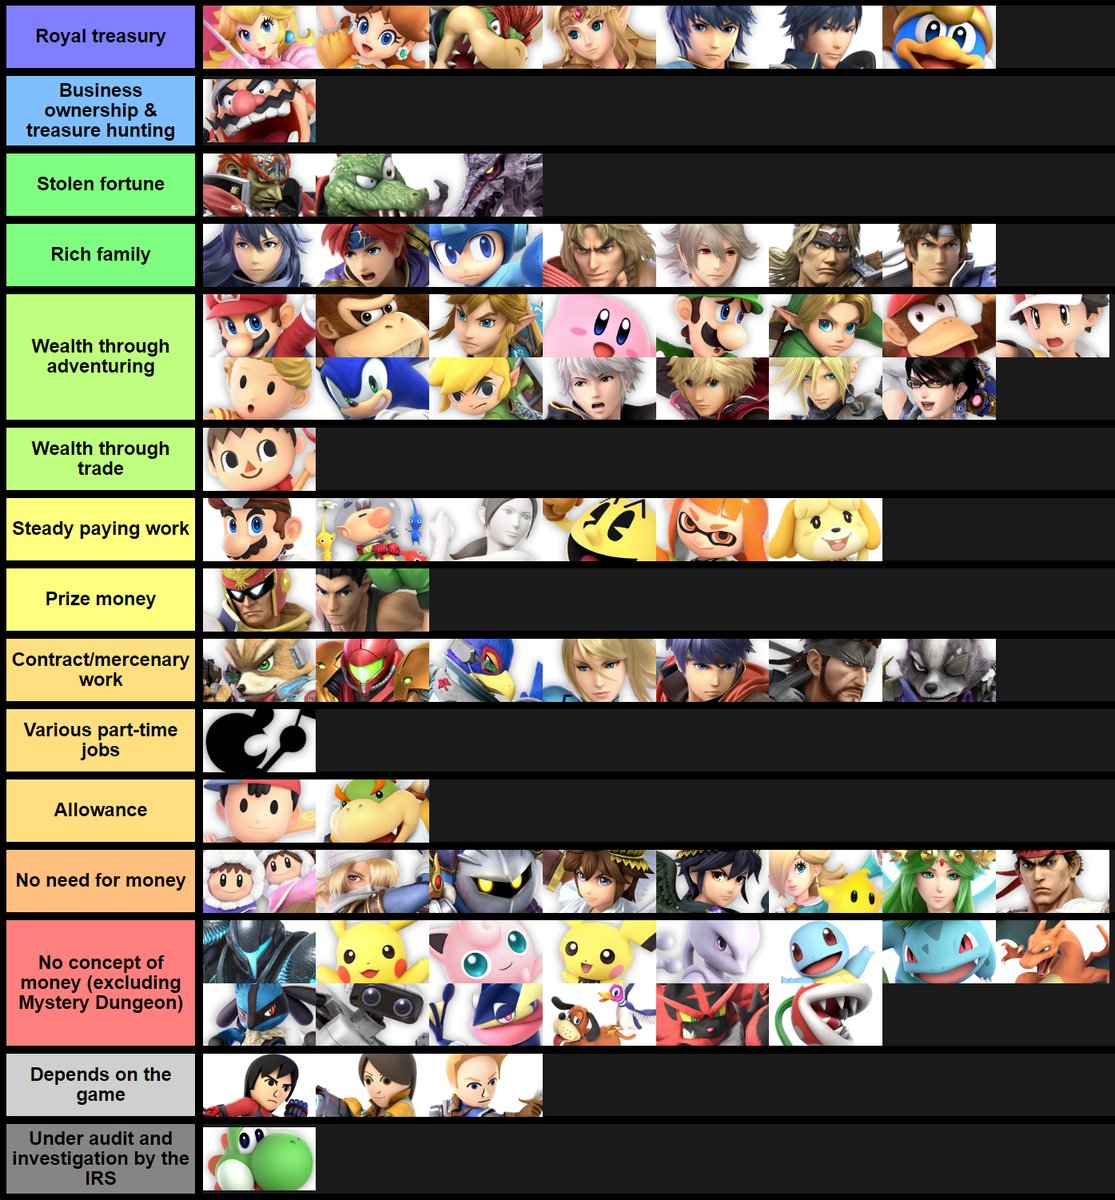 Smash Roster By Their Primary Source Of Income Smash Ultimate Tier Lists Know Your Meme